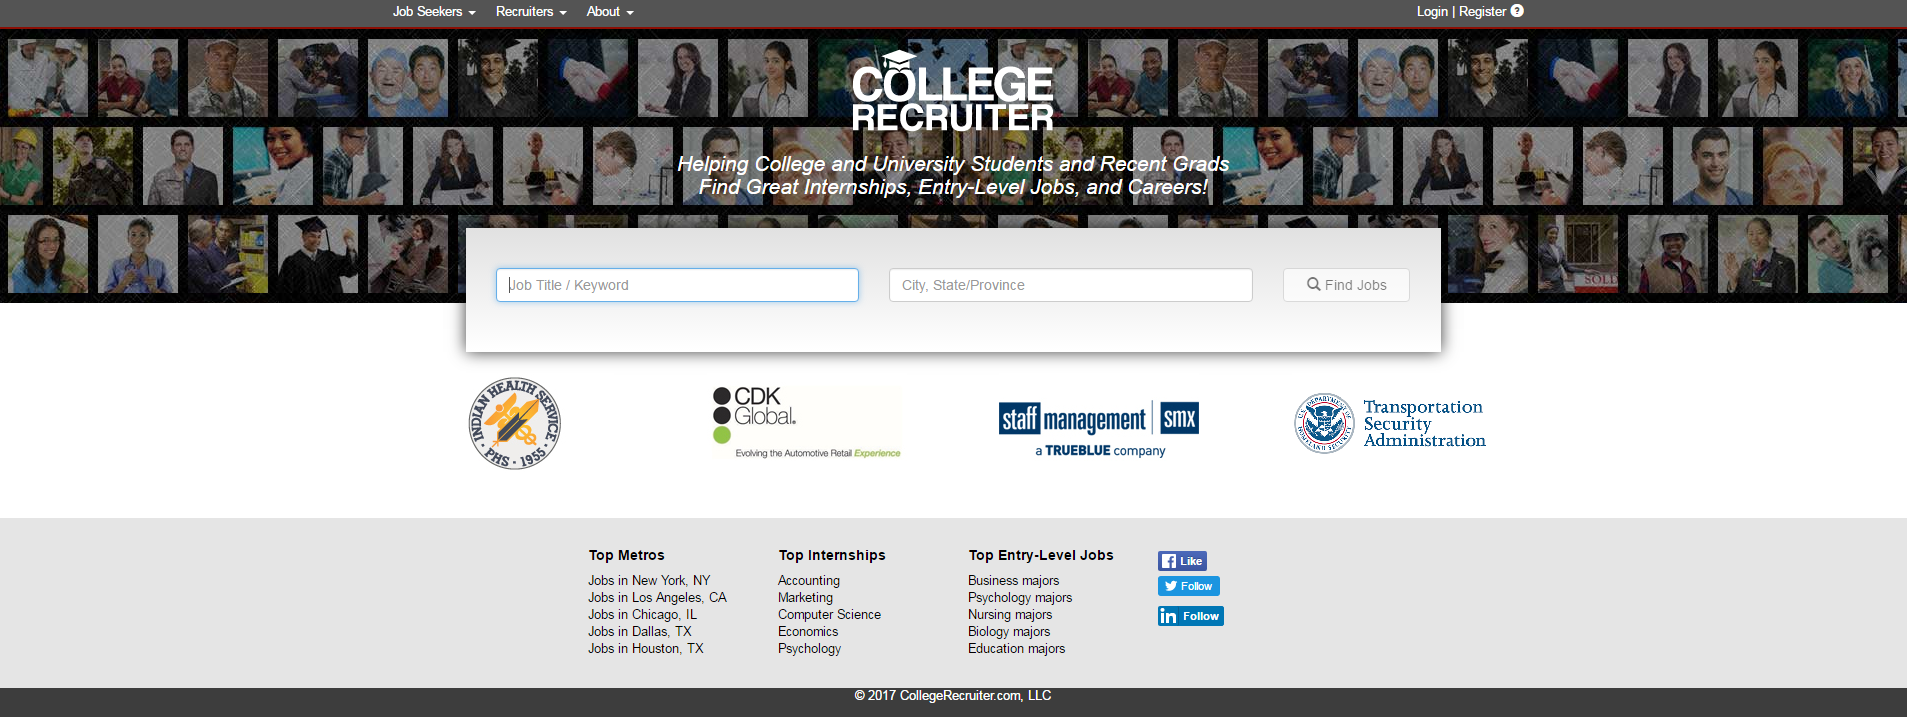 freelance websites college recruiter